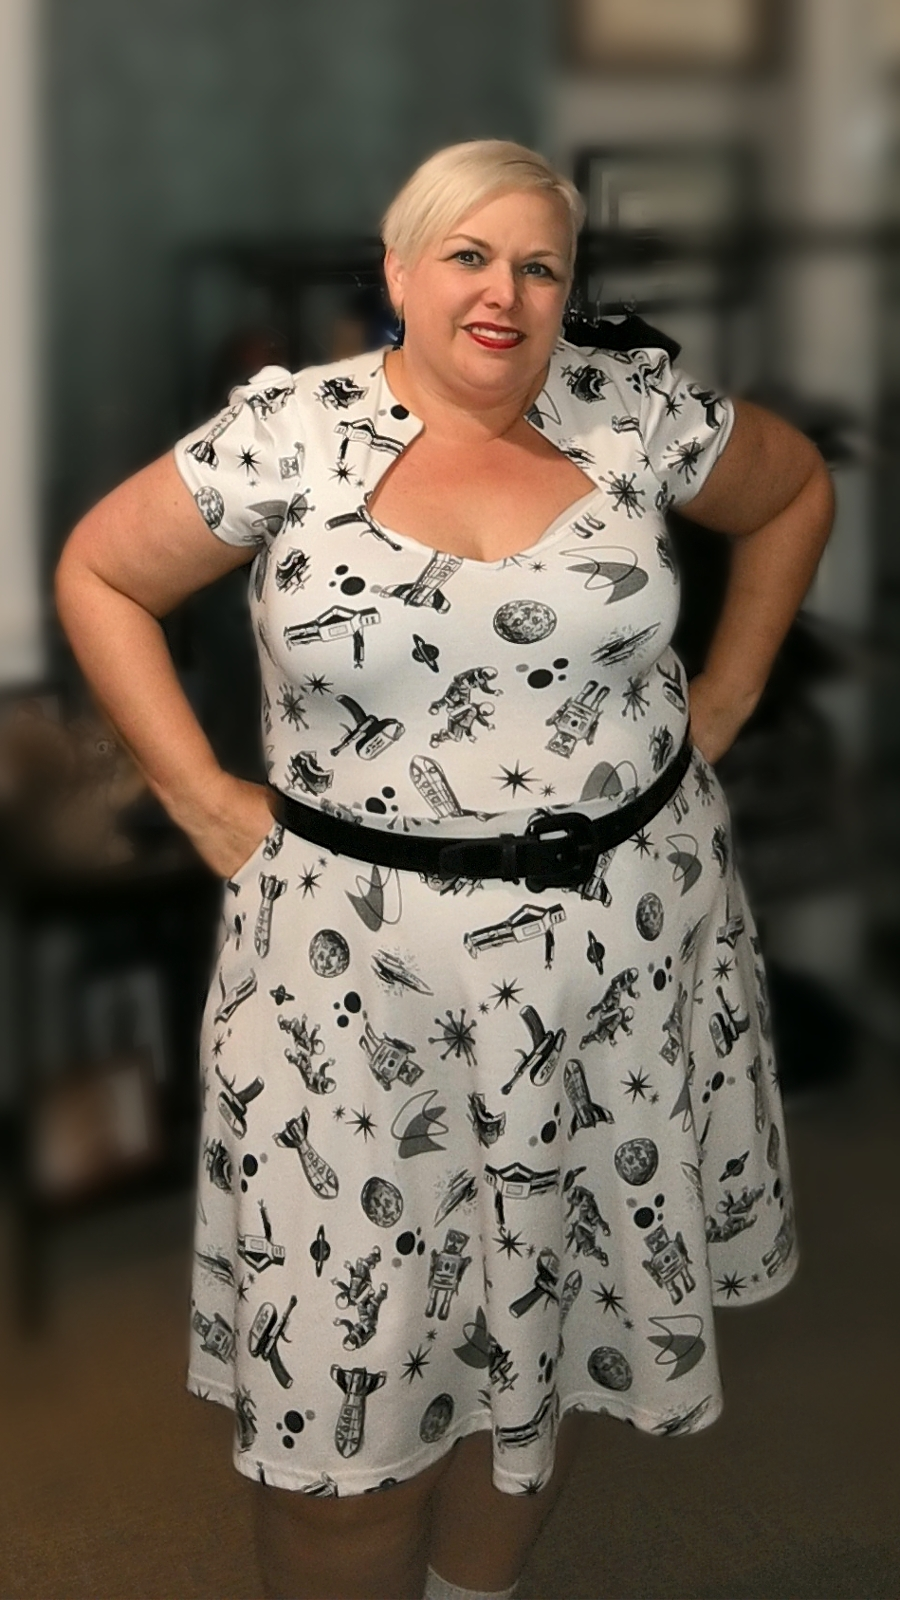 Outfit of the Day: 50s Dress bySteady